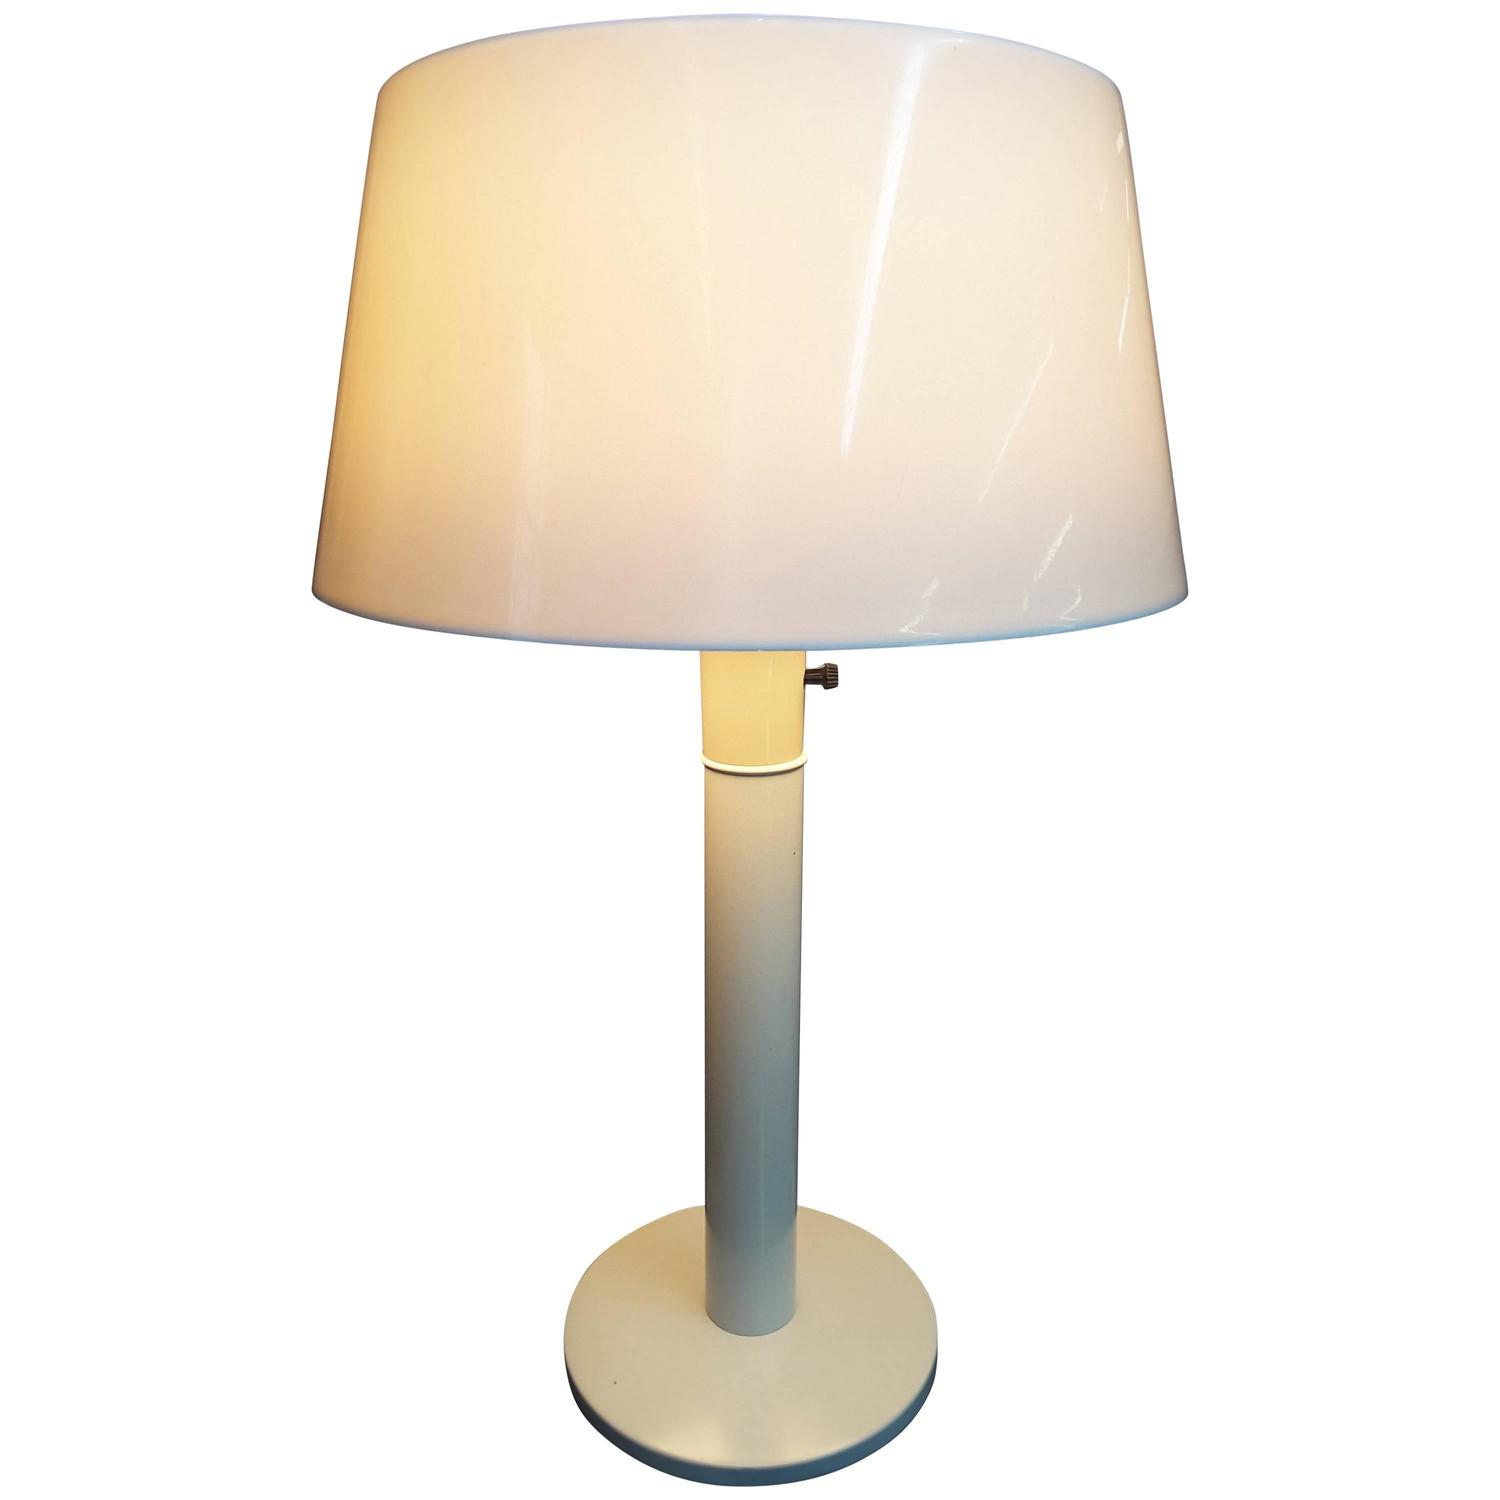 Gerald thurston table lamp for lightolier all in white for sale at gerald thurston table lamp for lightolier all in white for sale at 1stdibs geotapseo Image collections